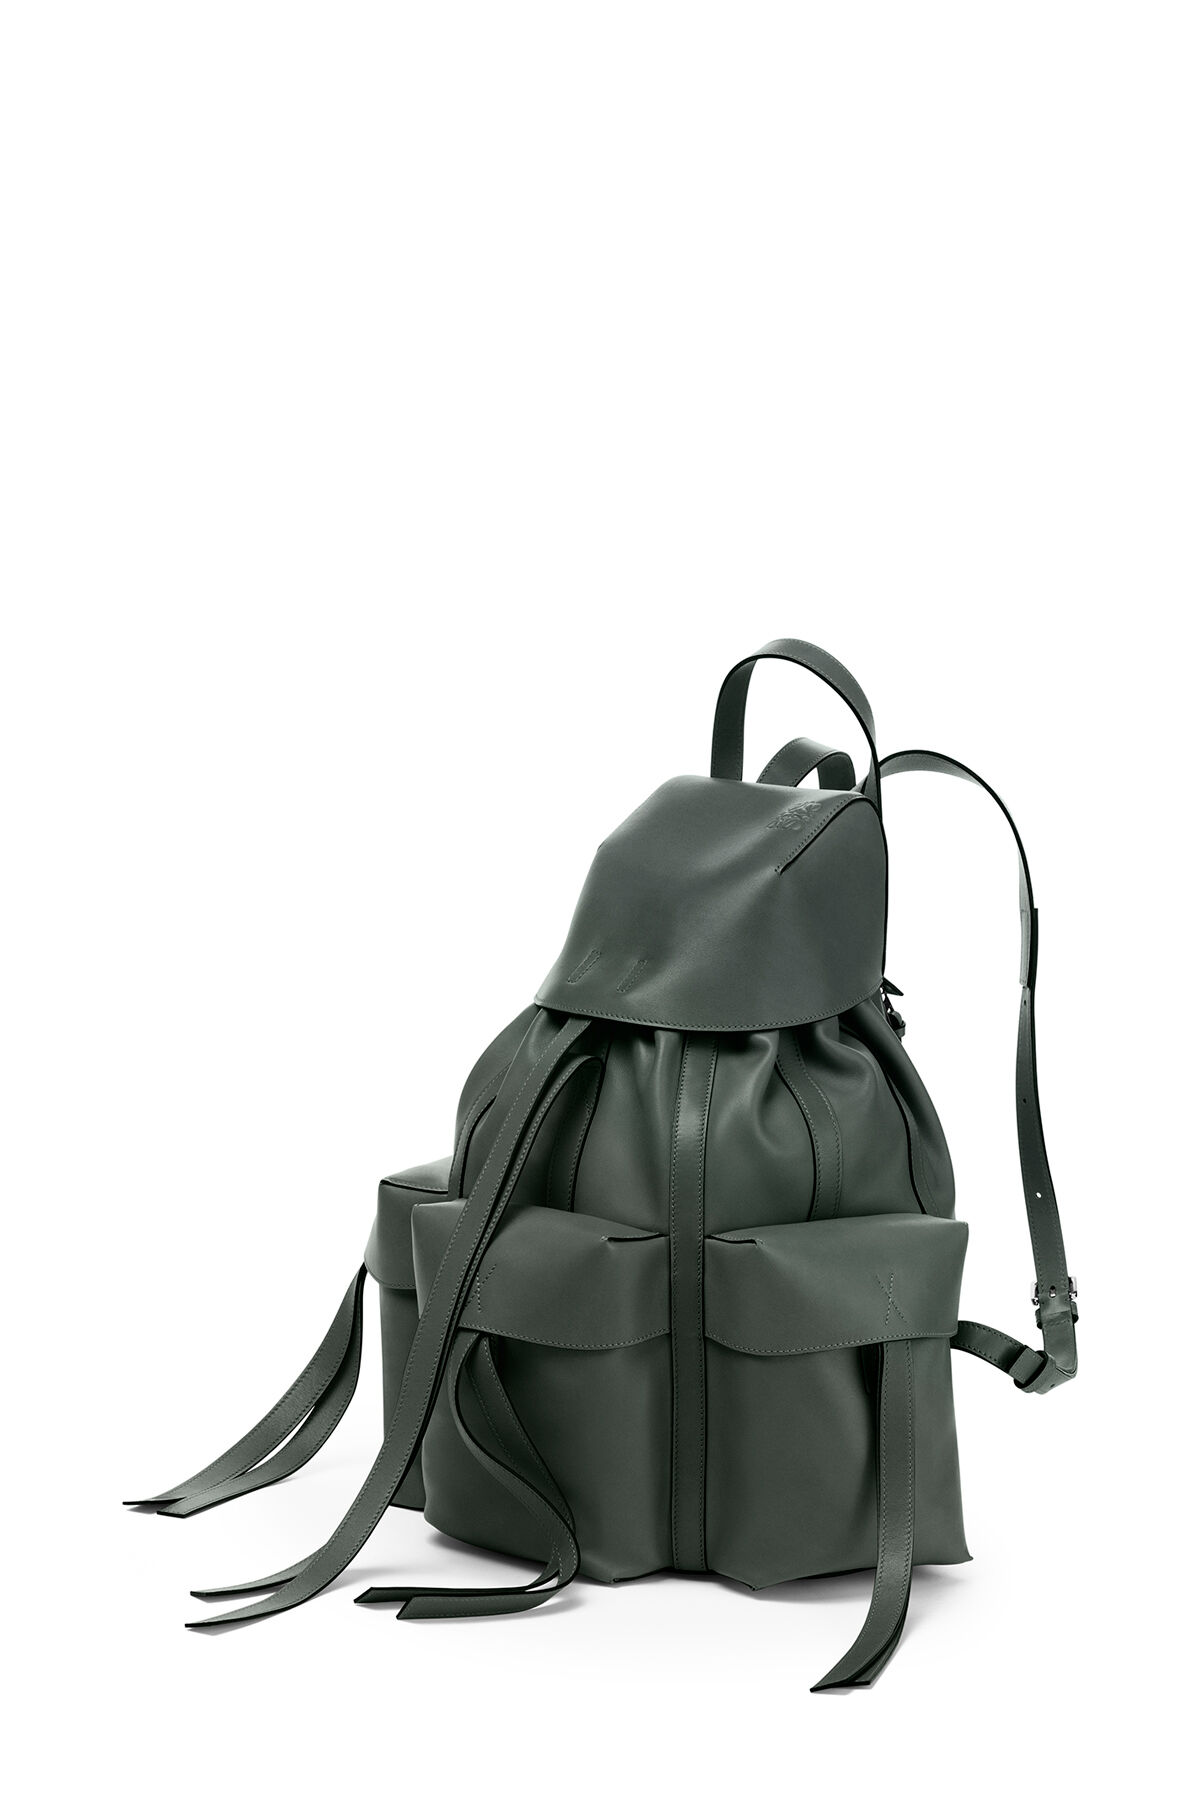 LOEWE ラックサック サイプレス all